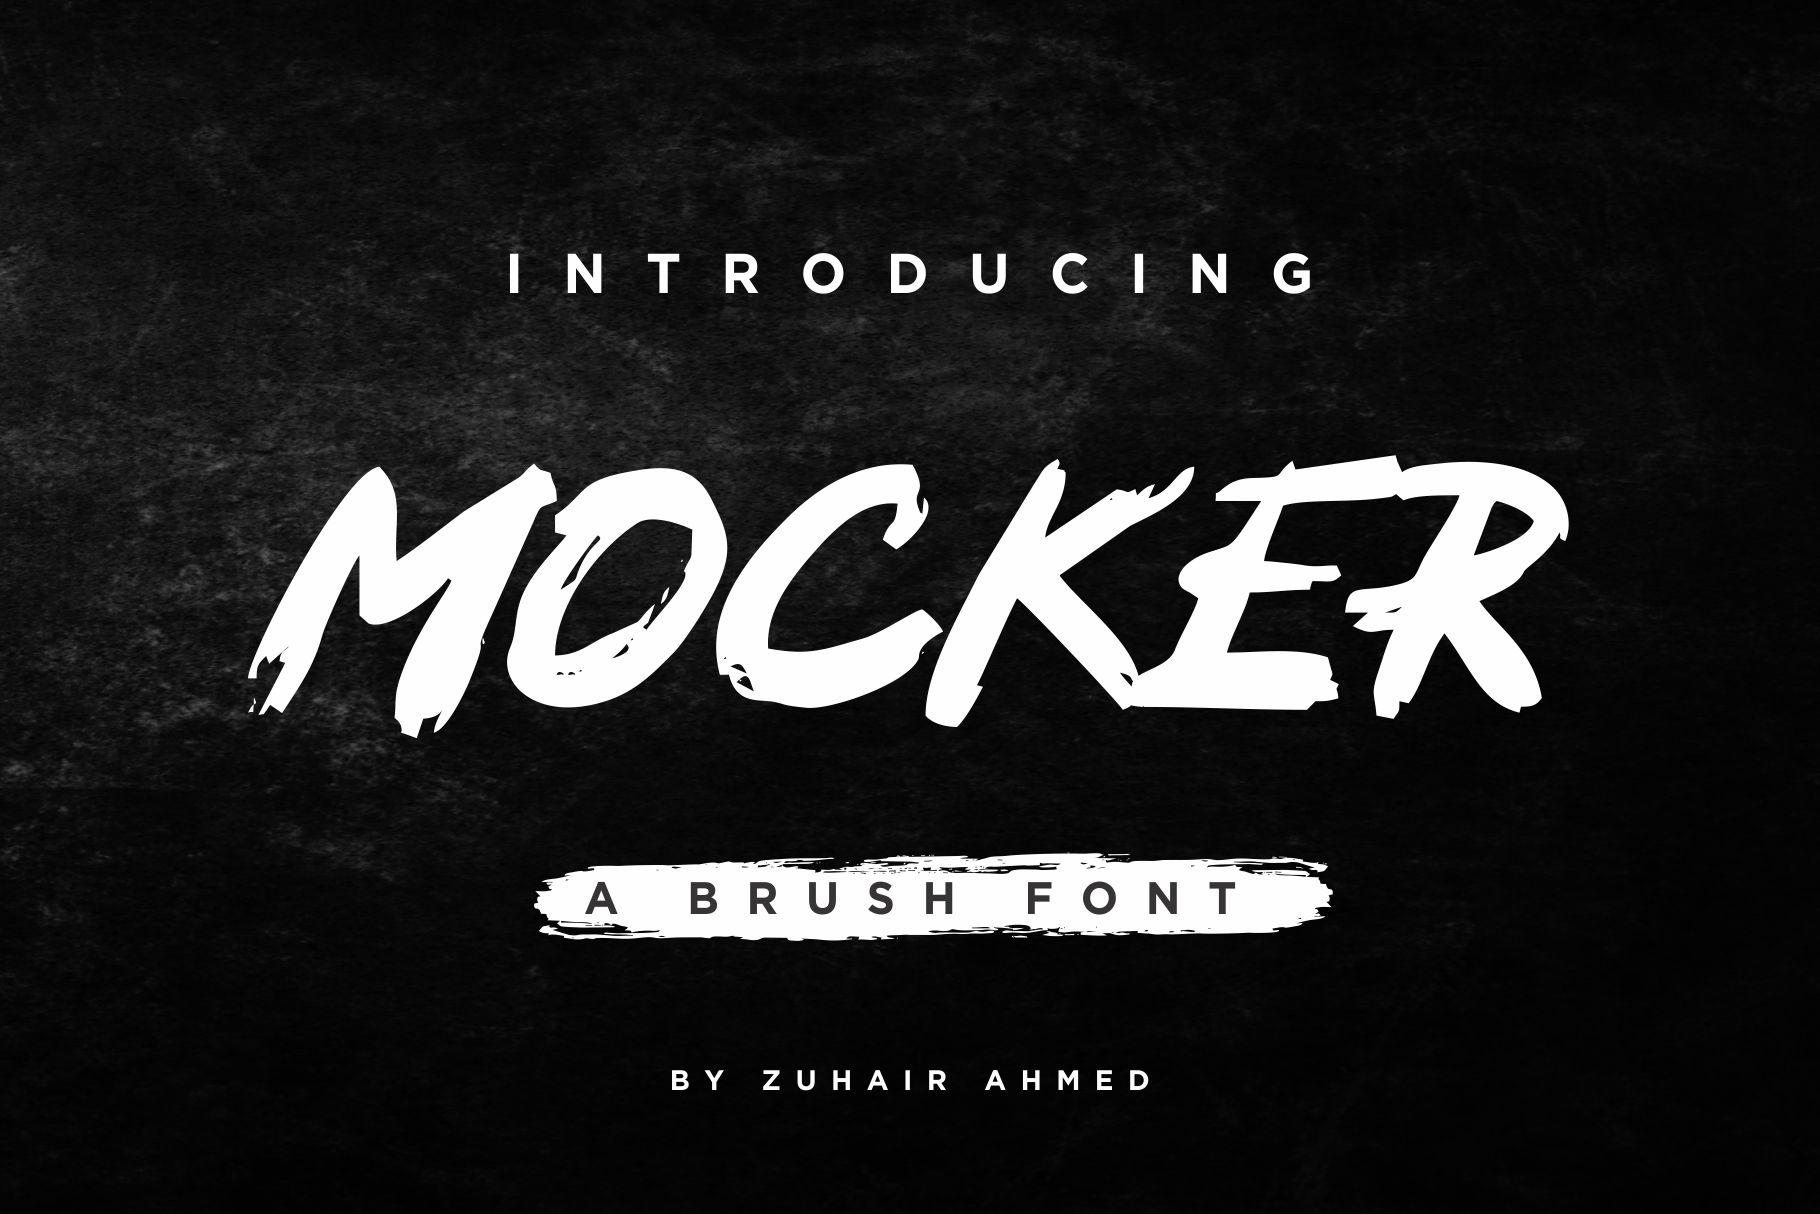 Mocker - A Brush Font example image 1